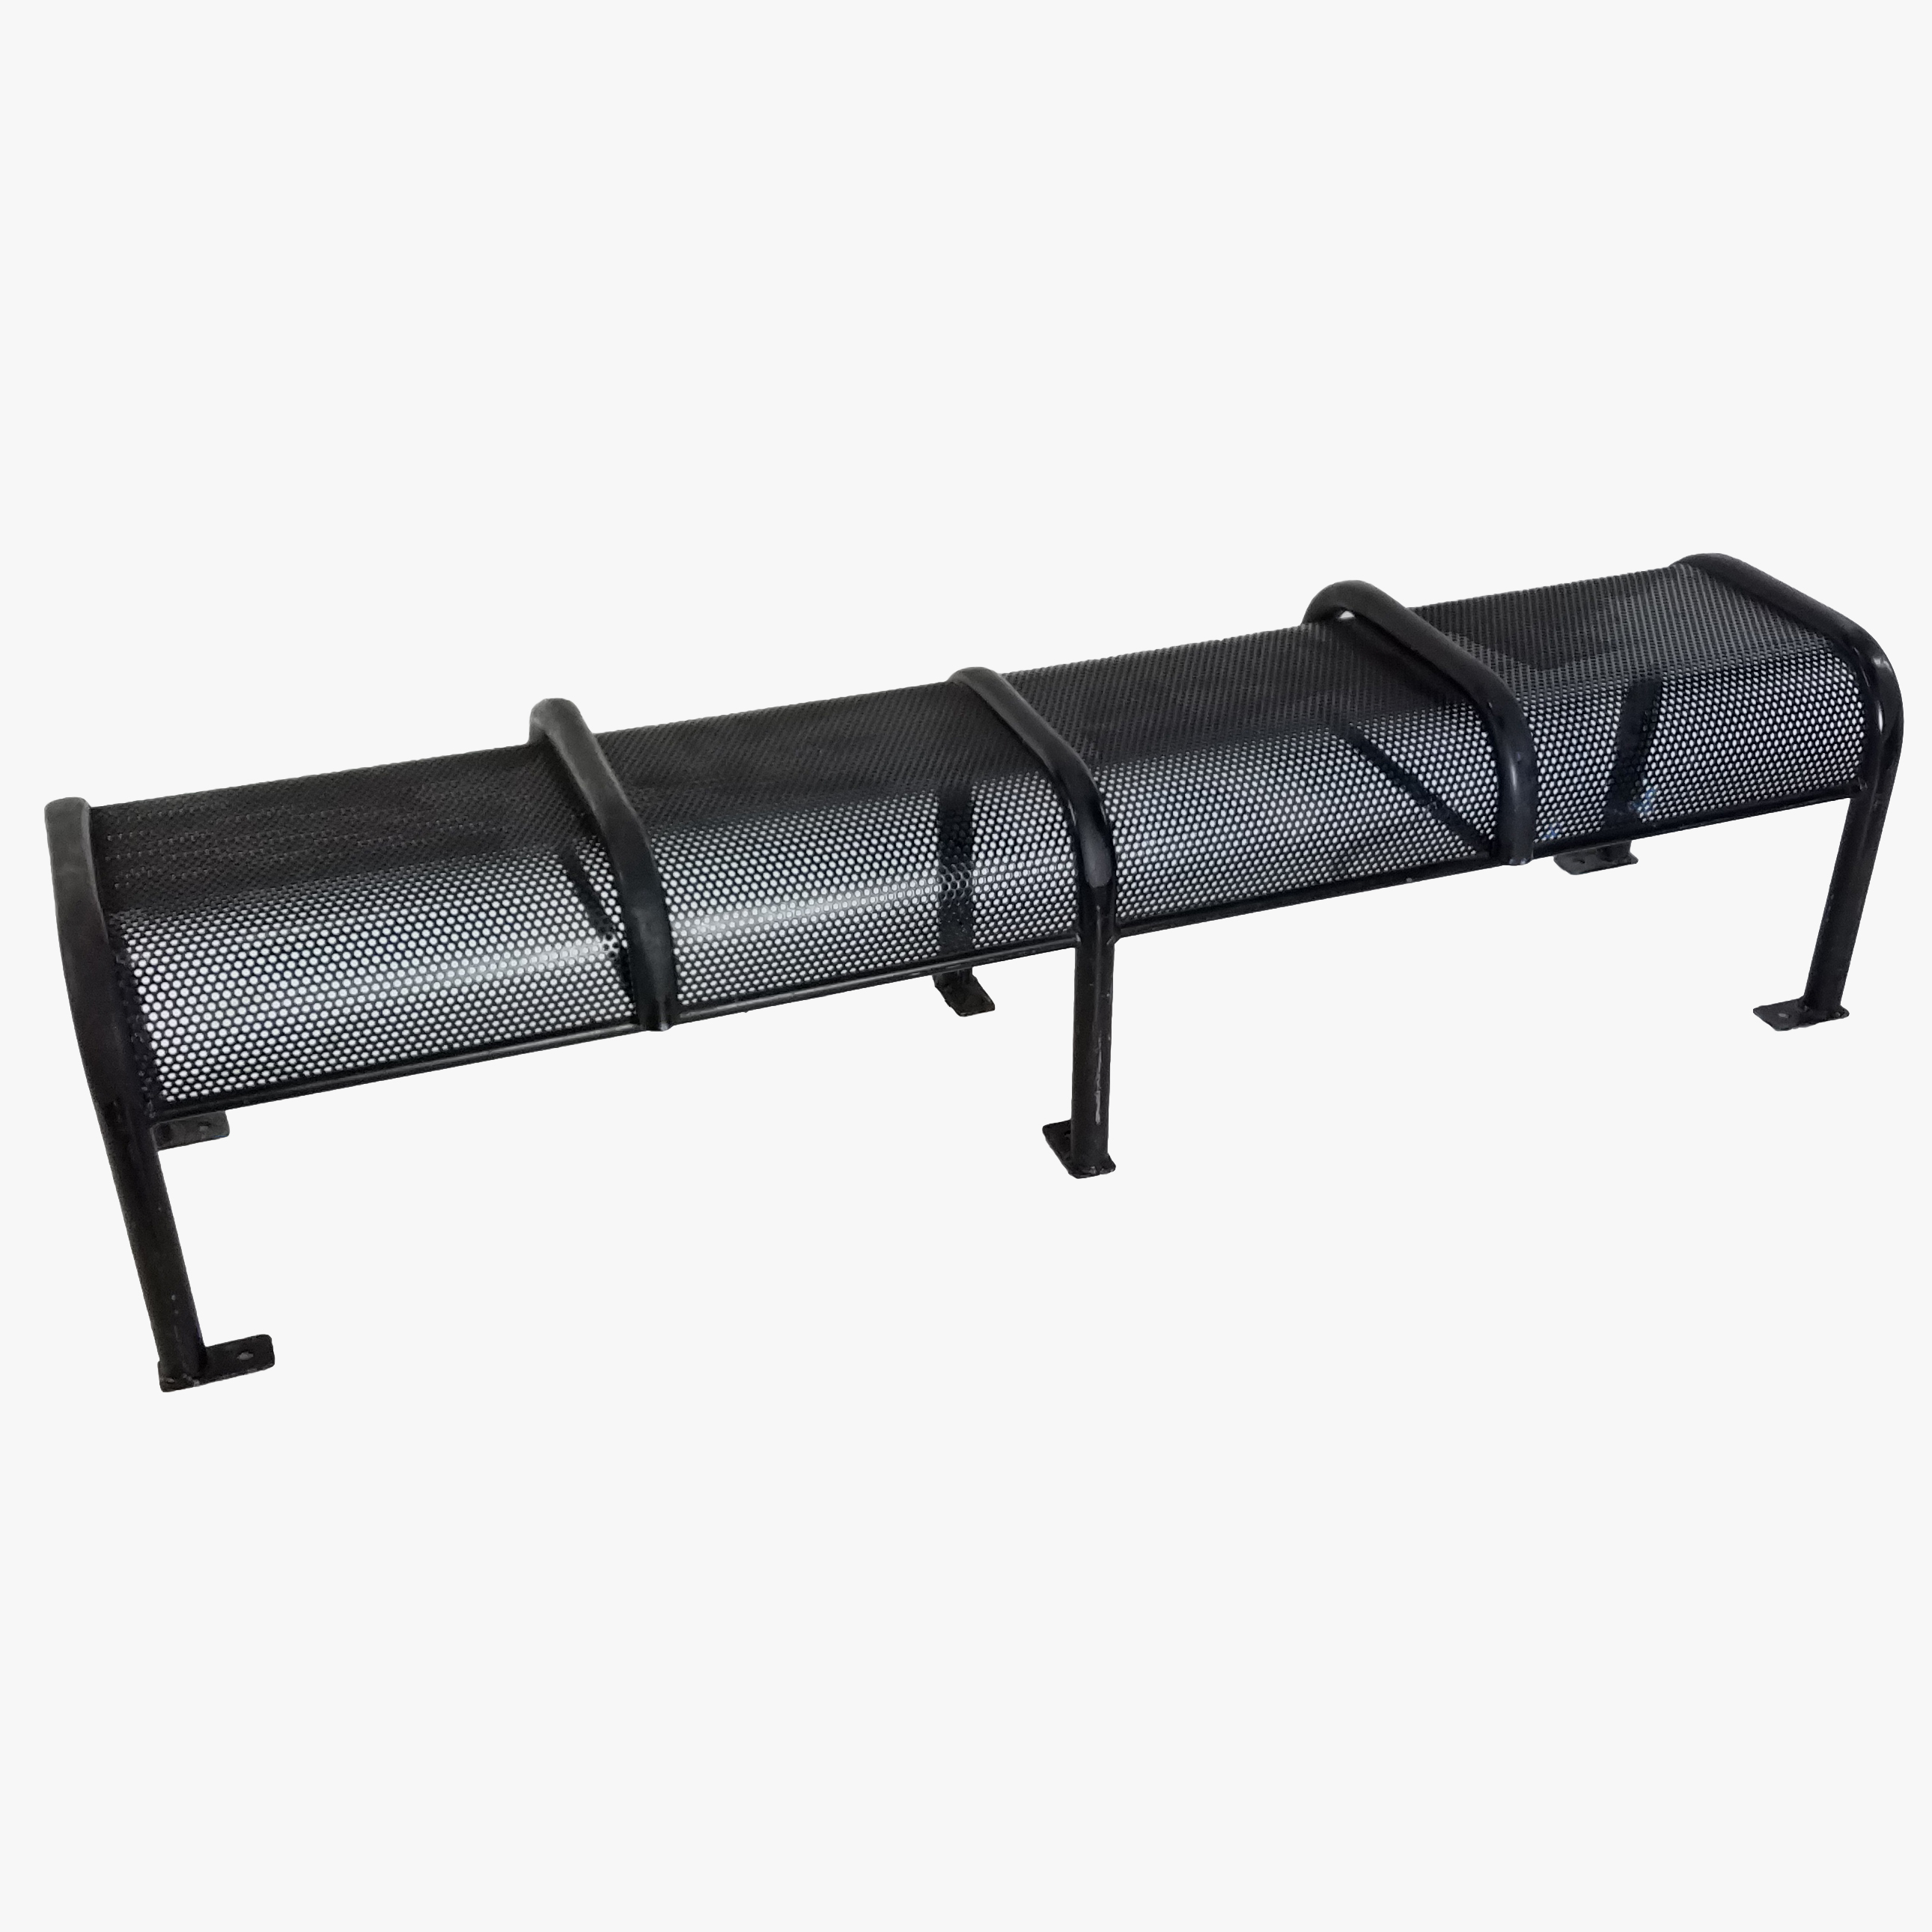 Bench Perforated Black 72 Air Designs